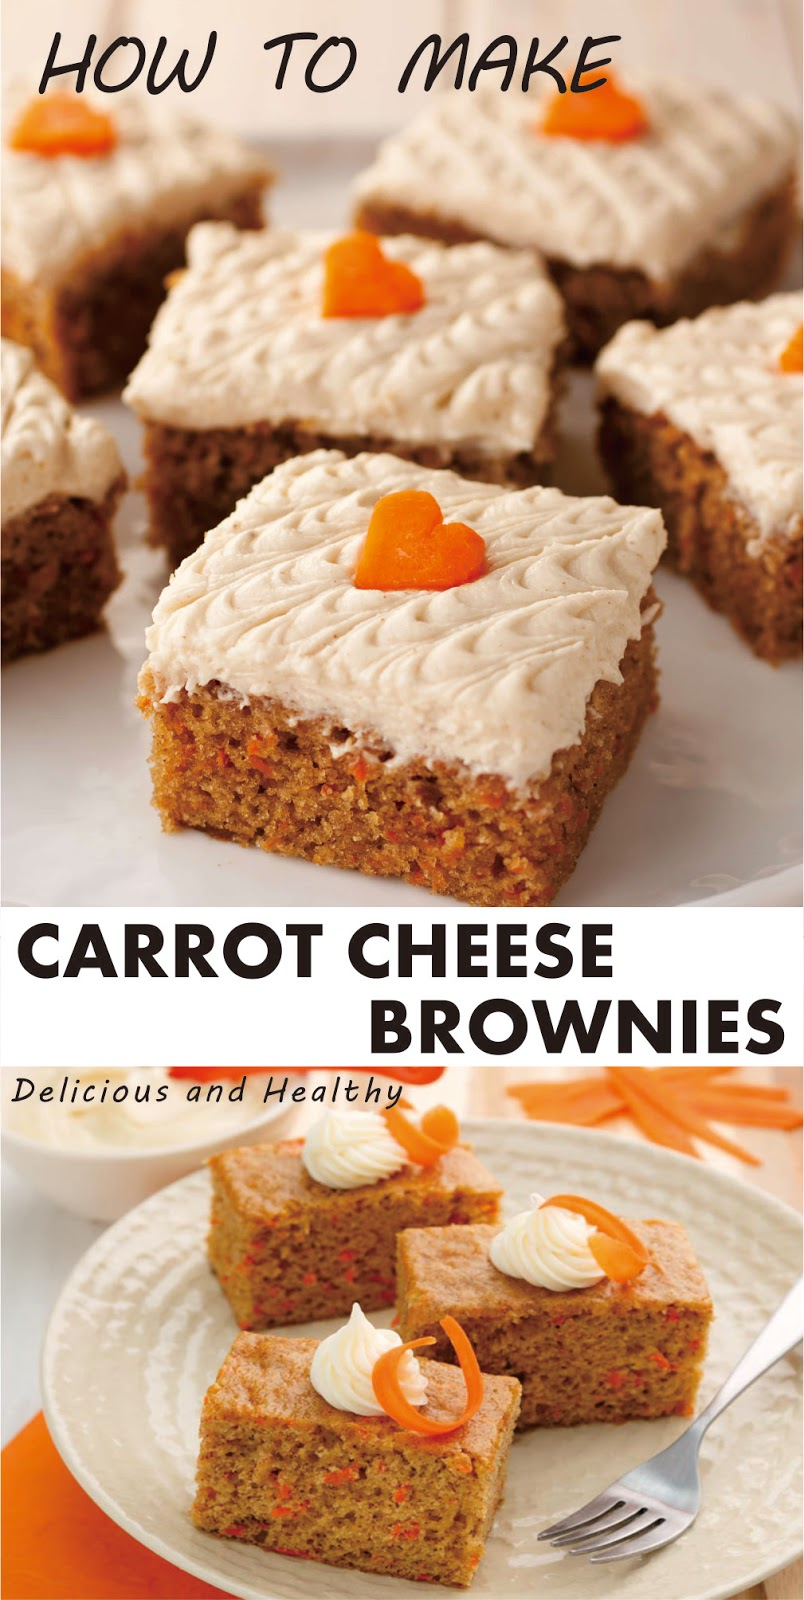 CARROT CHEESE BROWNIES